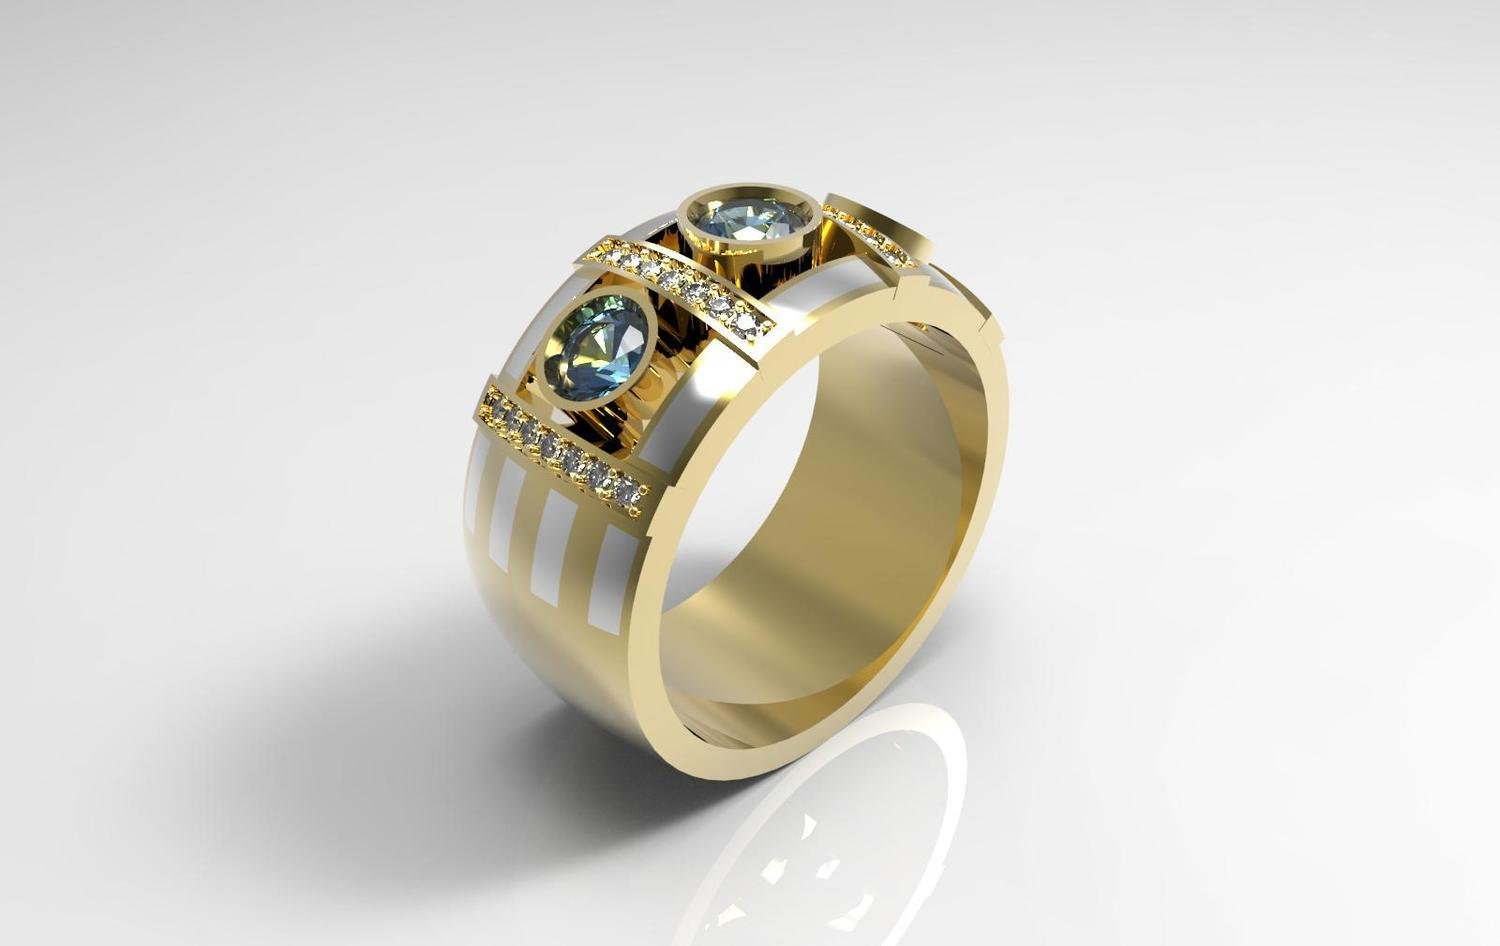 3D Model of Anniversary Ring with Sapphires and Diamonds